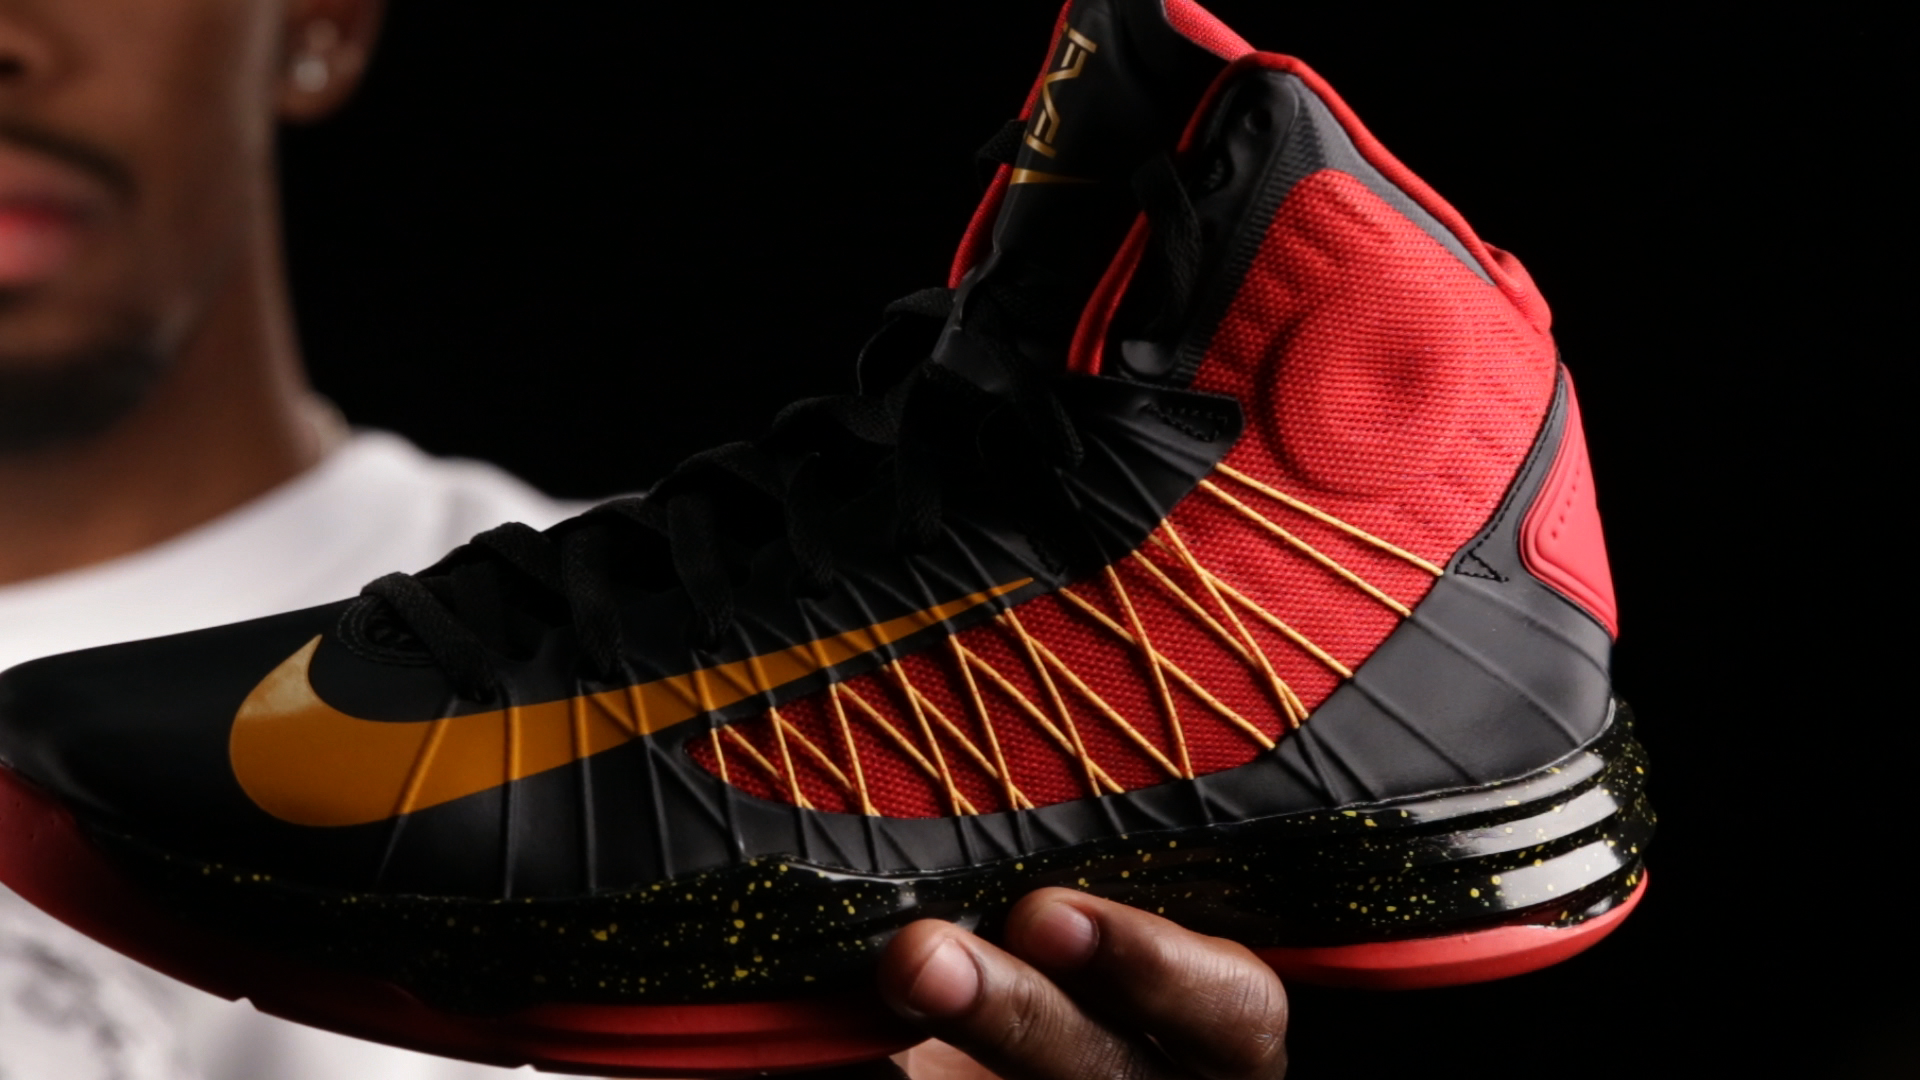 kyrie irving shoes black nike hyperdunk